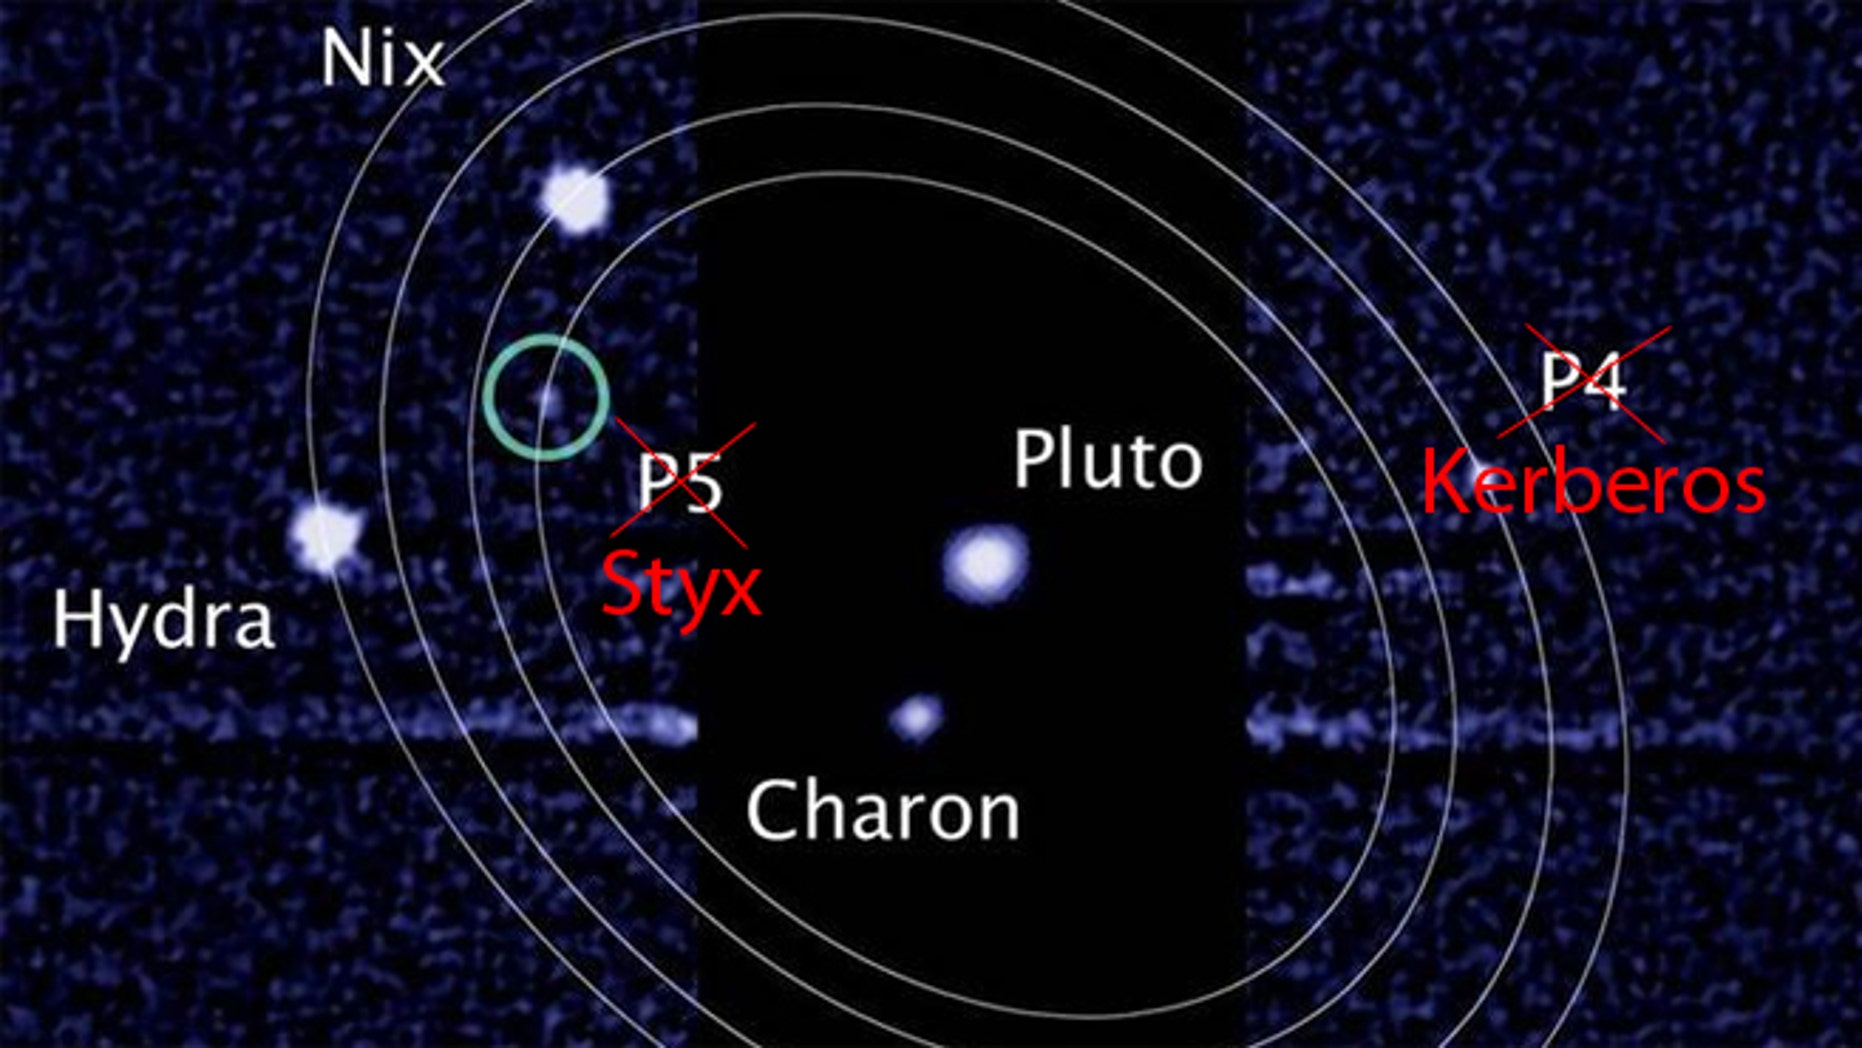 """Previously referred to as """"P4"""" and """"P5,"""" Pluto's newest new moons have been renamed Kerberos and Styx."""